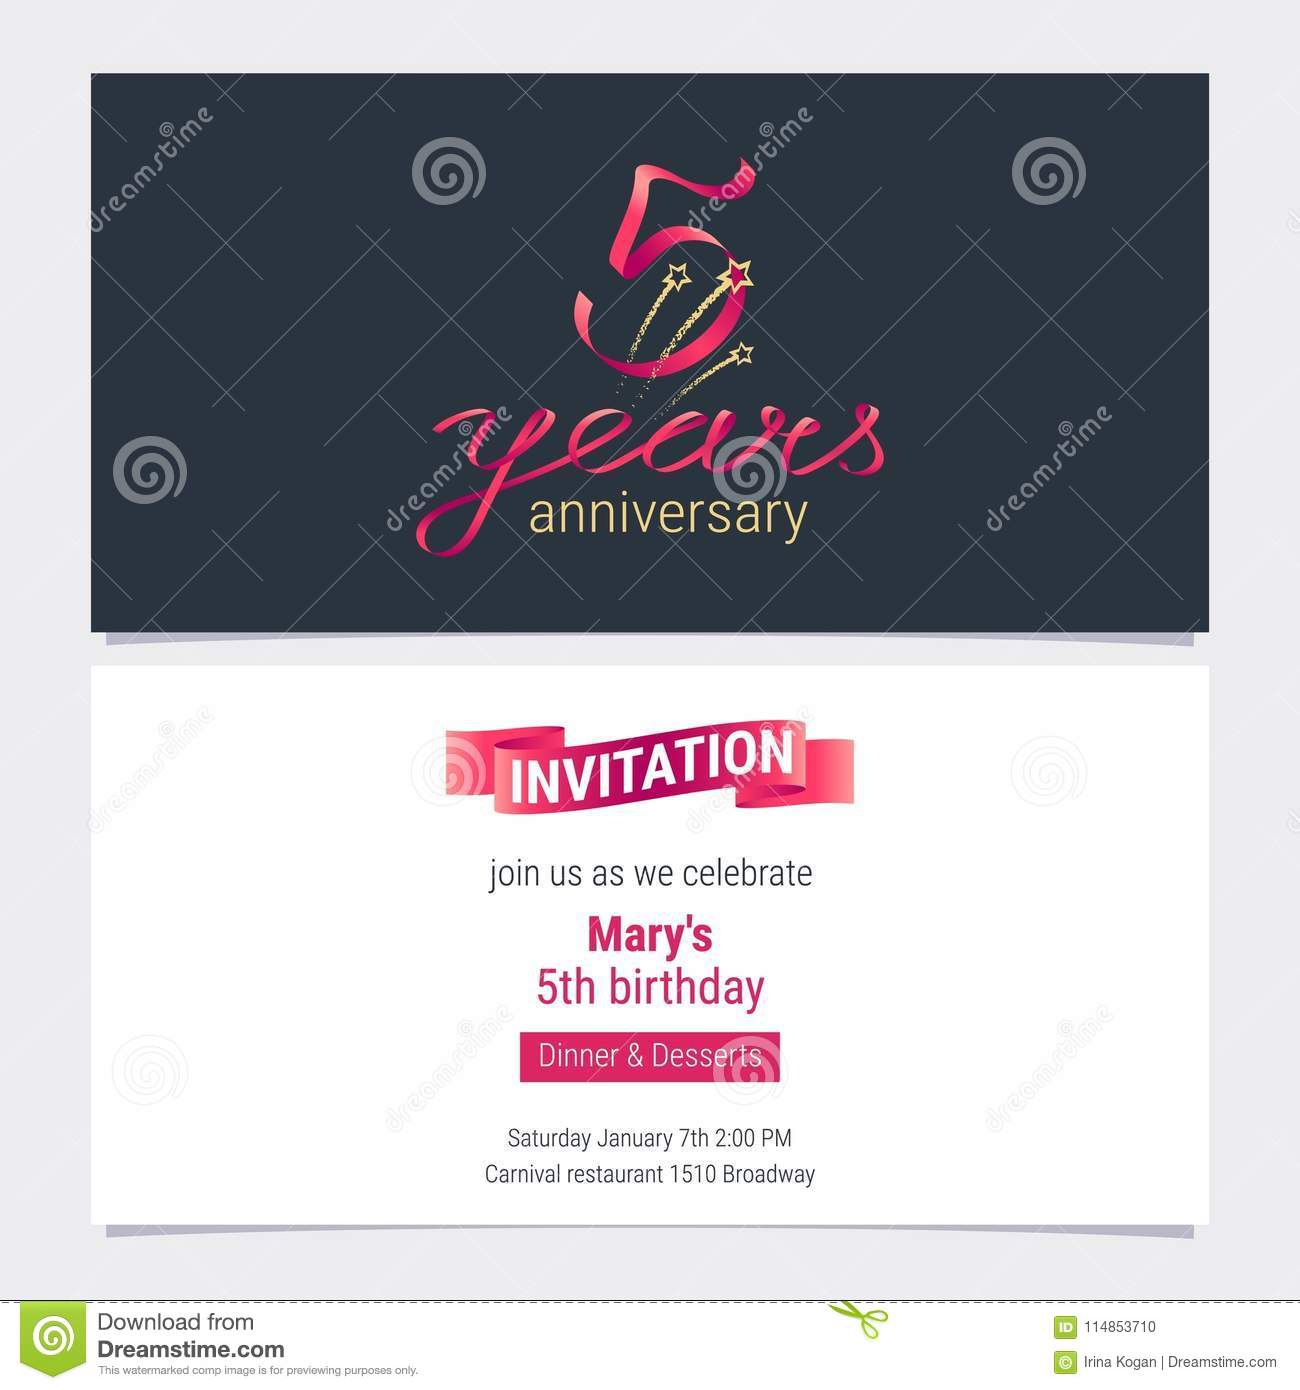 5 Years Anniversary Invite Vector Illustration Graphic Design Element For 5th Birthday Card Party Invitation